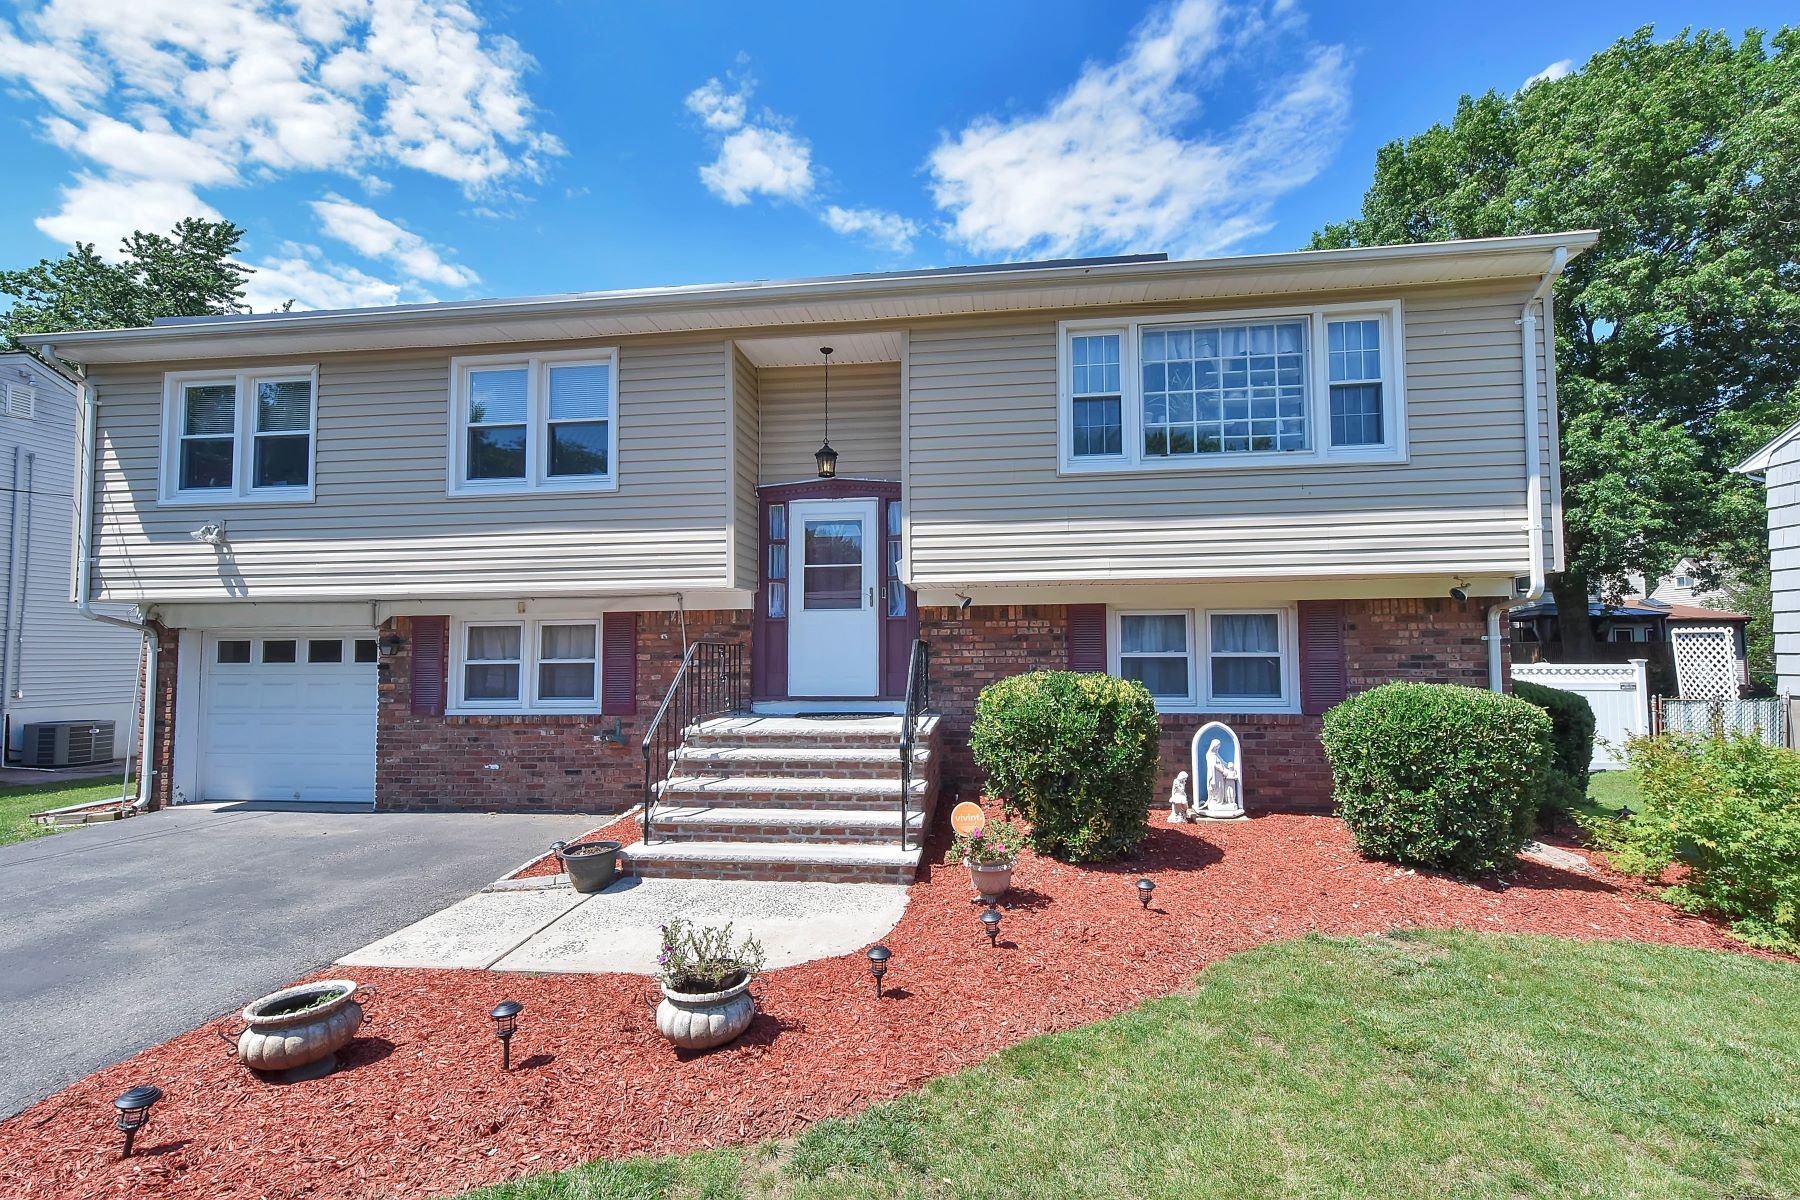 Single Family Home for Sale at Lovely Little Ferry Split! 10 Birch Street Little Ferry, New Jersey 07643 United States